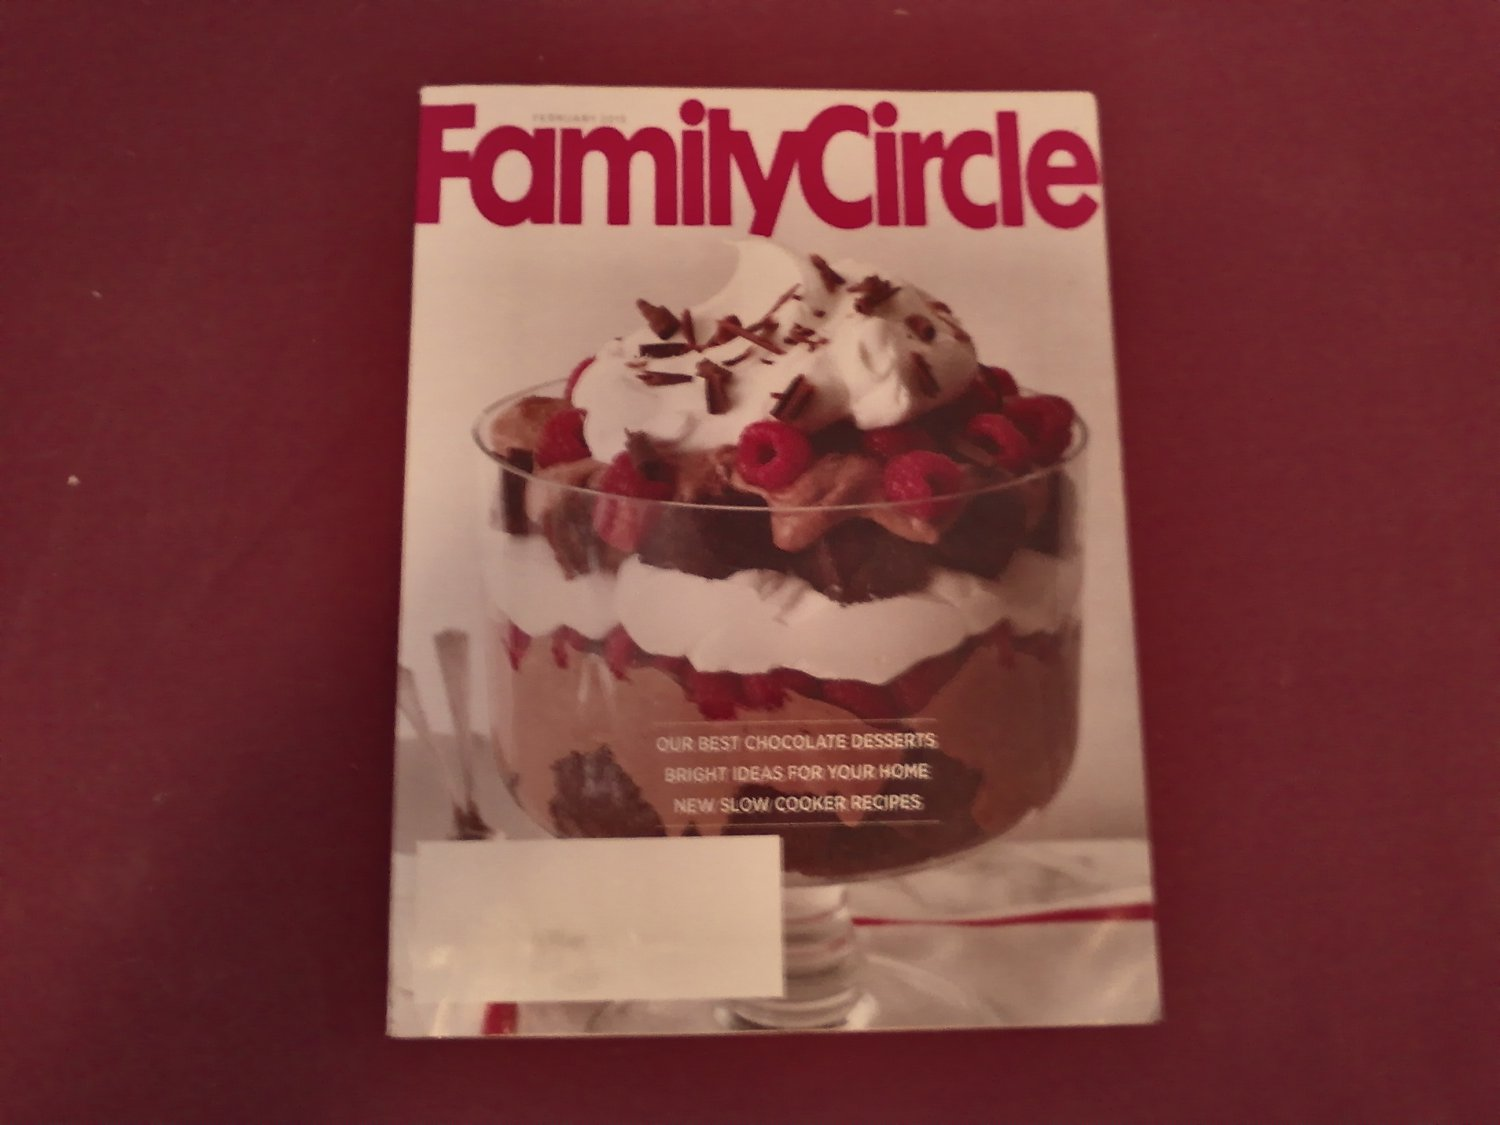 Family Circle Magazine February 2015 Volume 128 Number 2 - Chocolate Desserts Slow Cooker